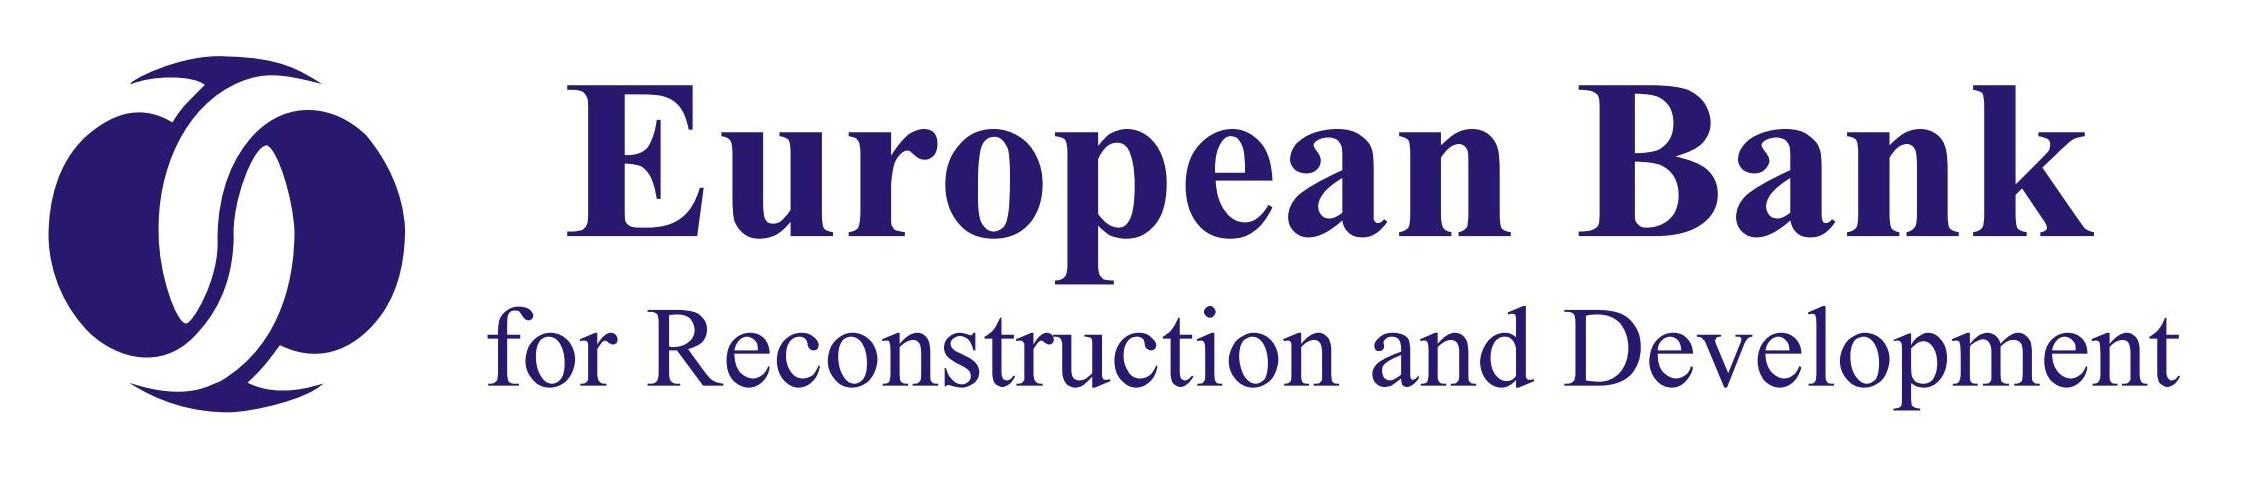 ebrd european bank logo